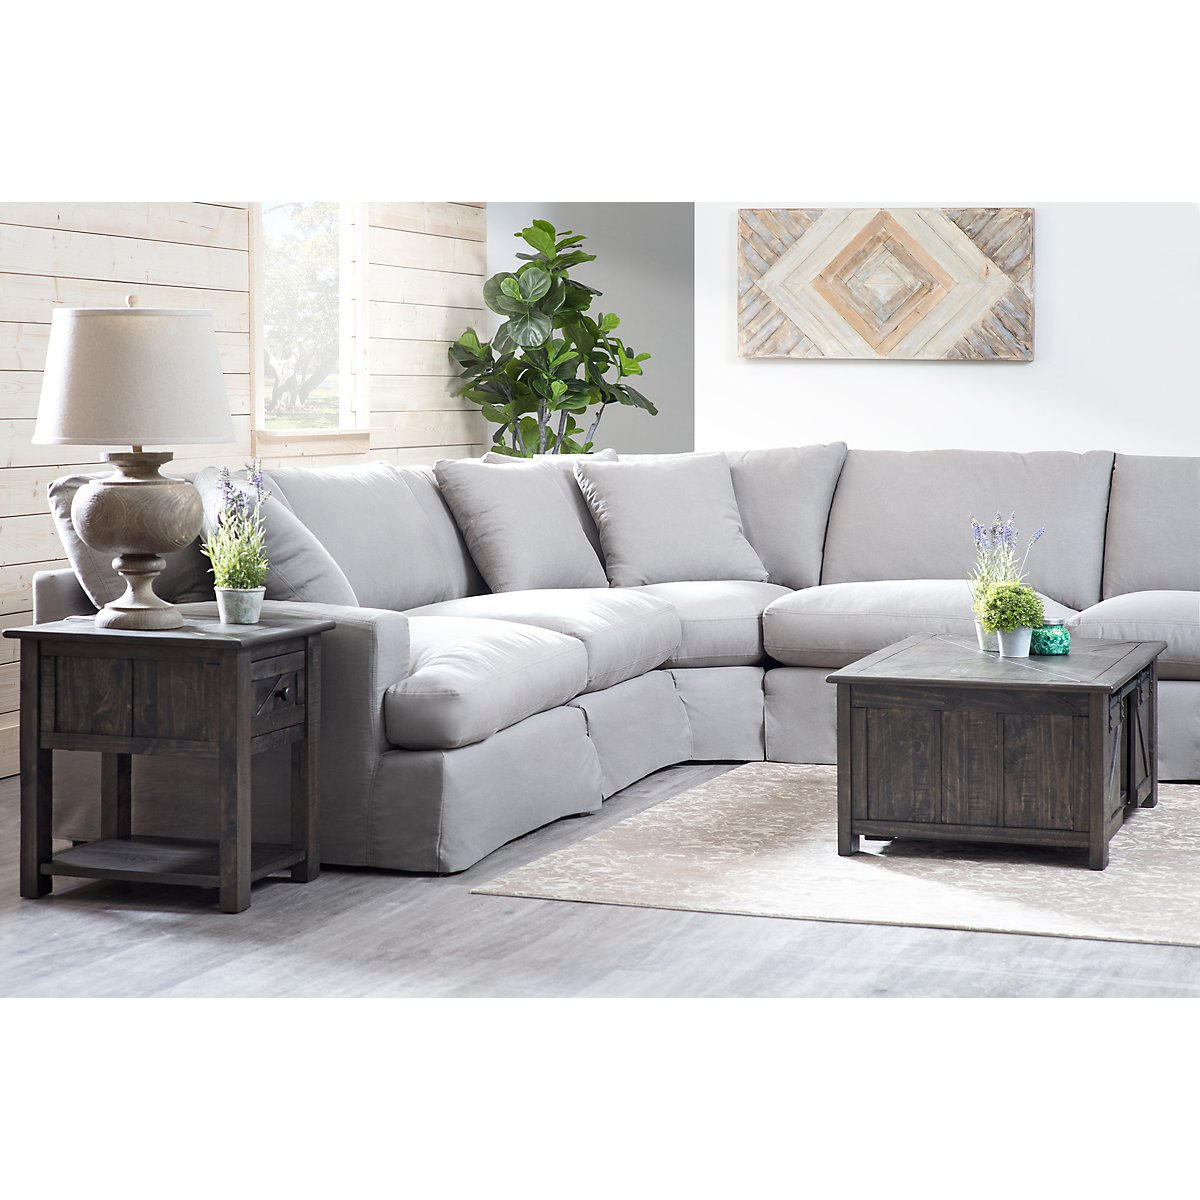 Delilah Gray Fabric Large Two-Arm Sectional